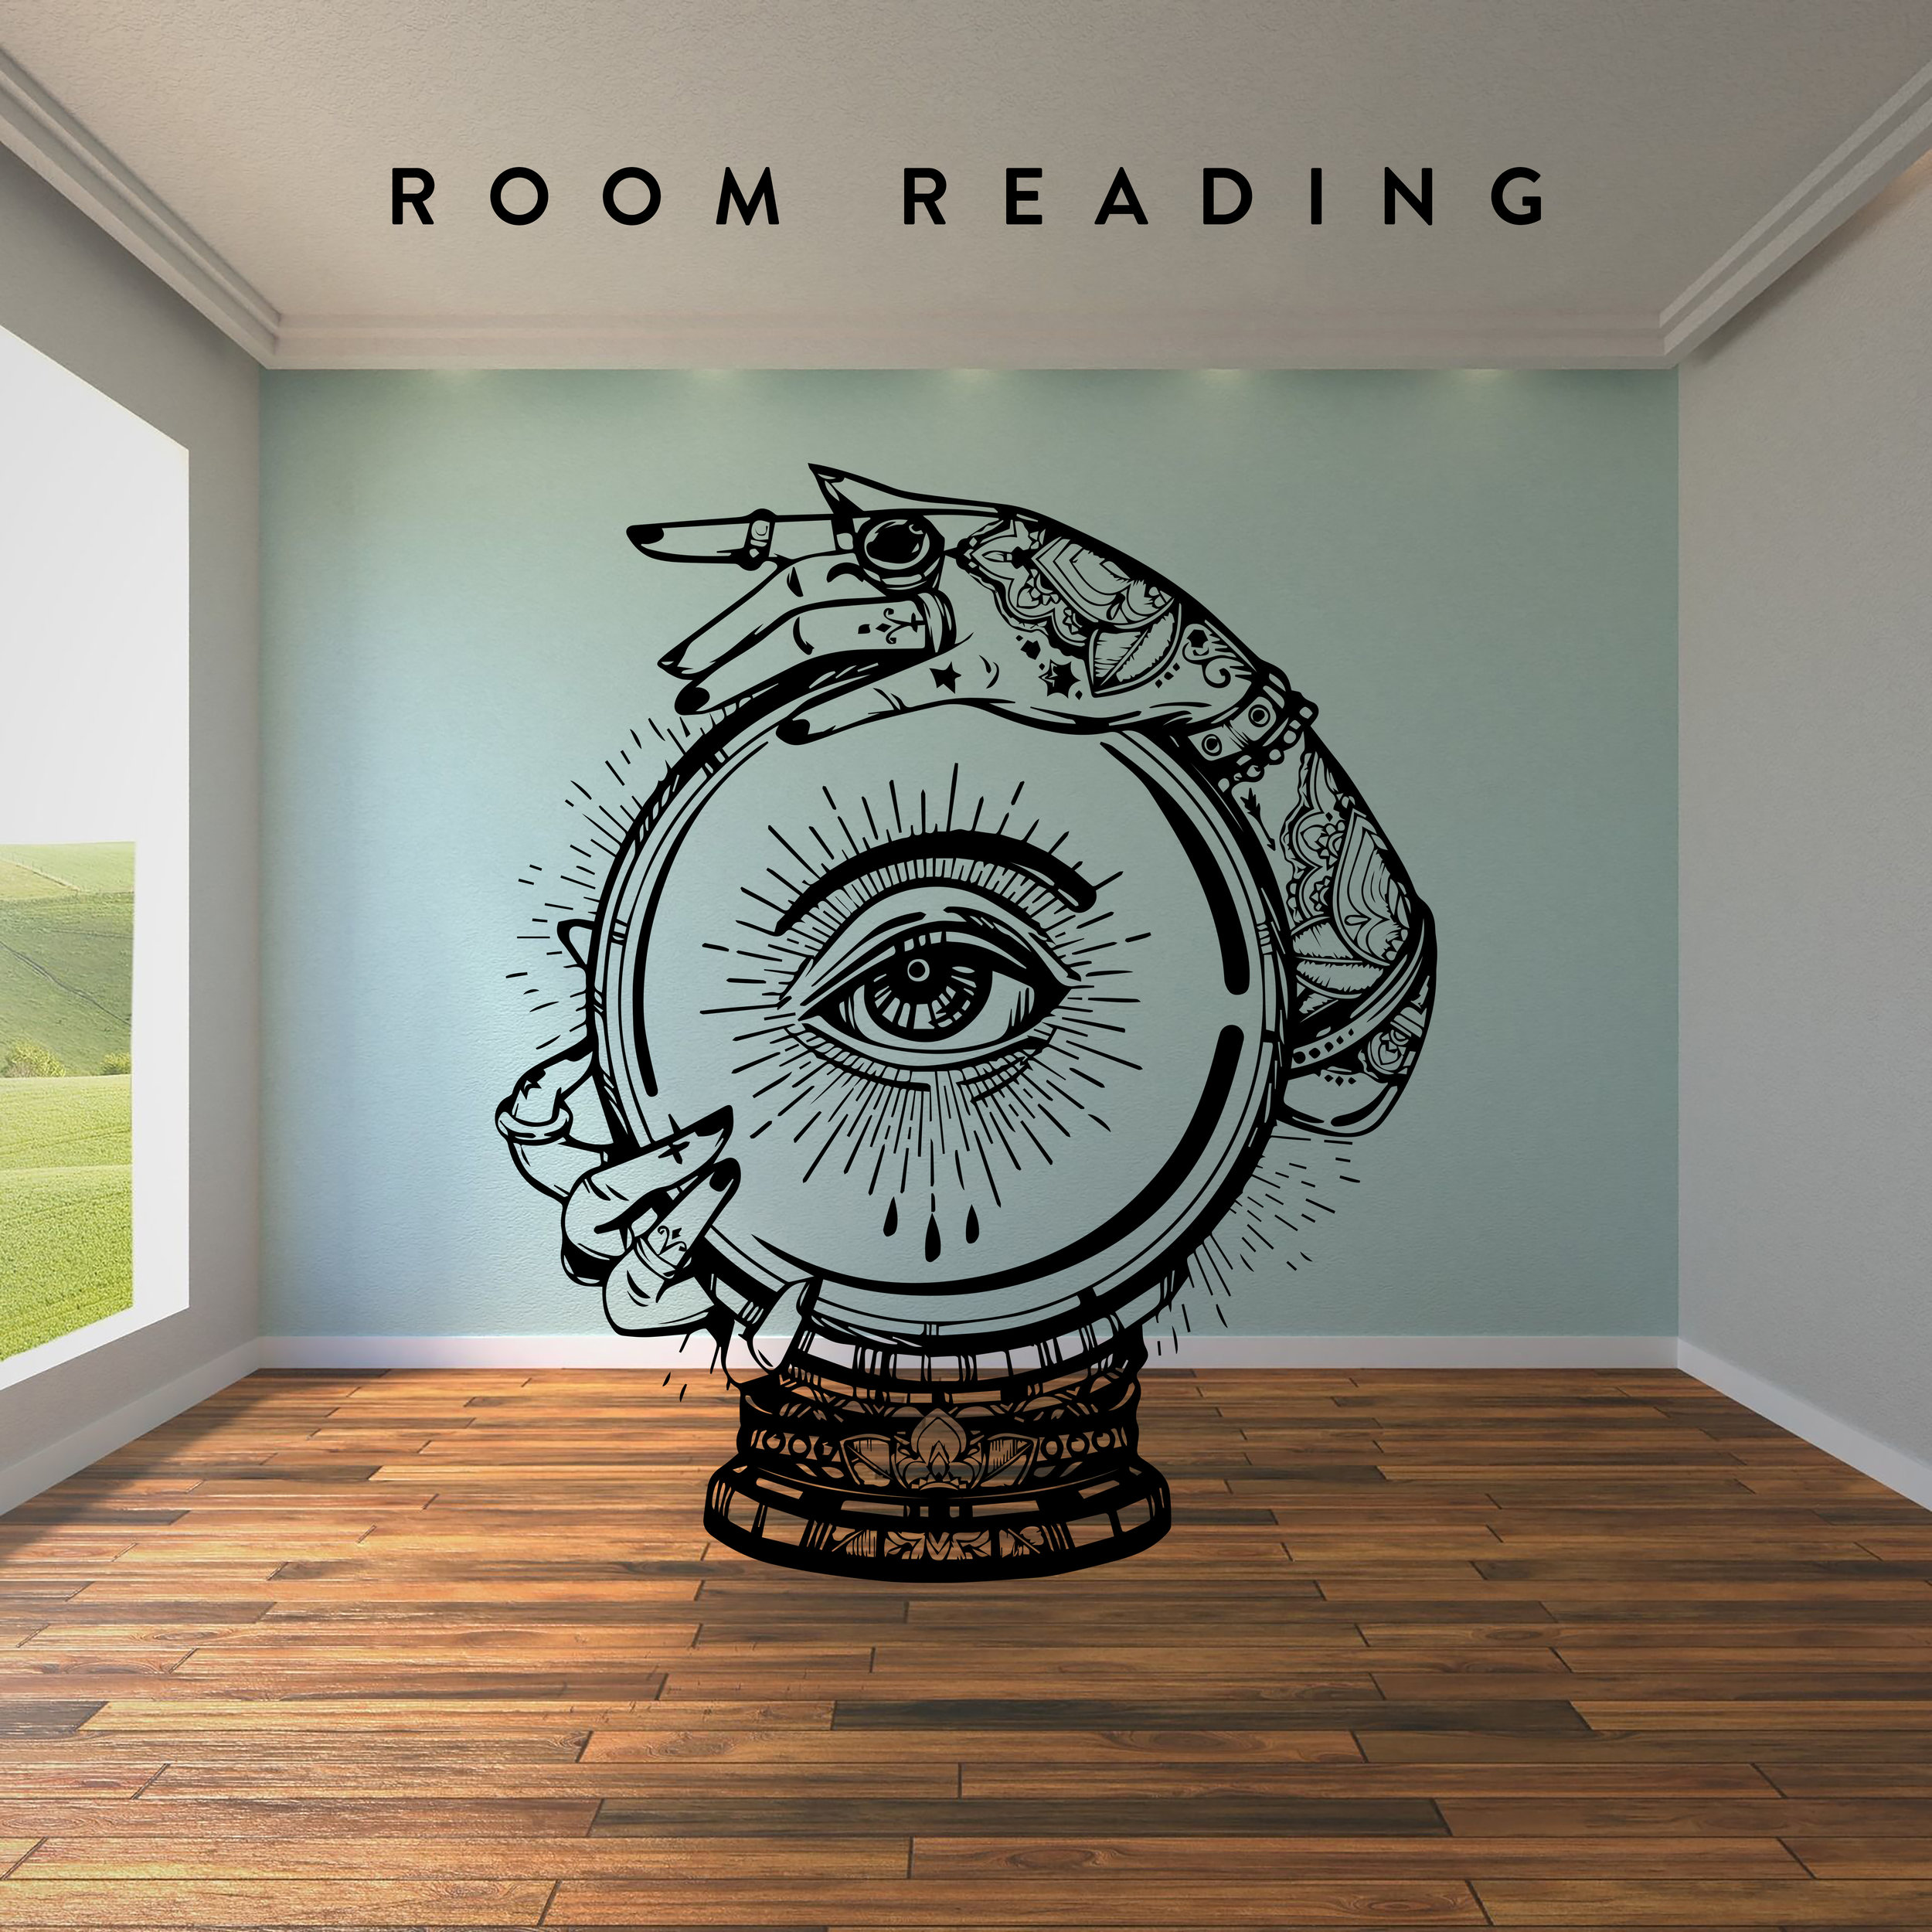 roomreading1.jpg